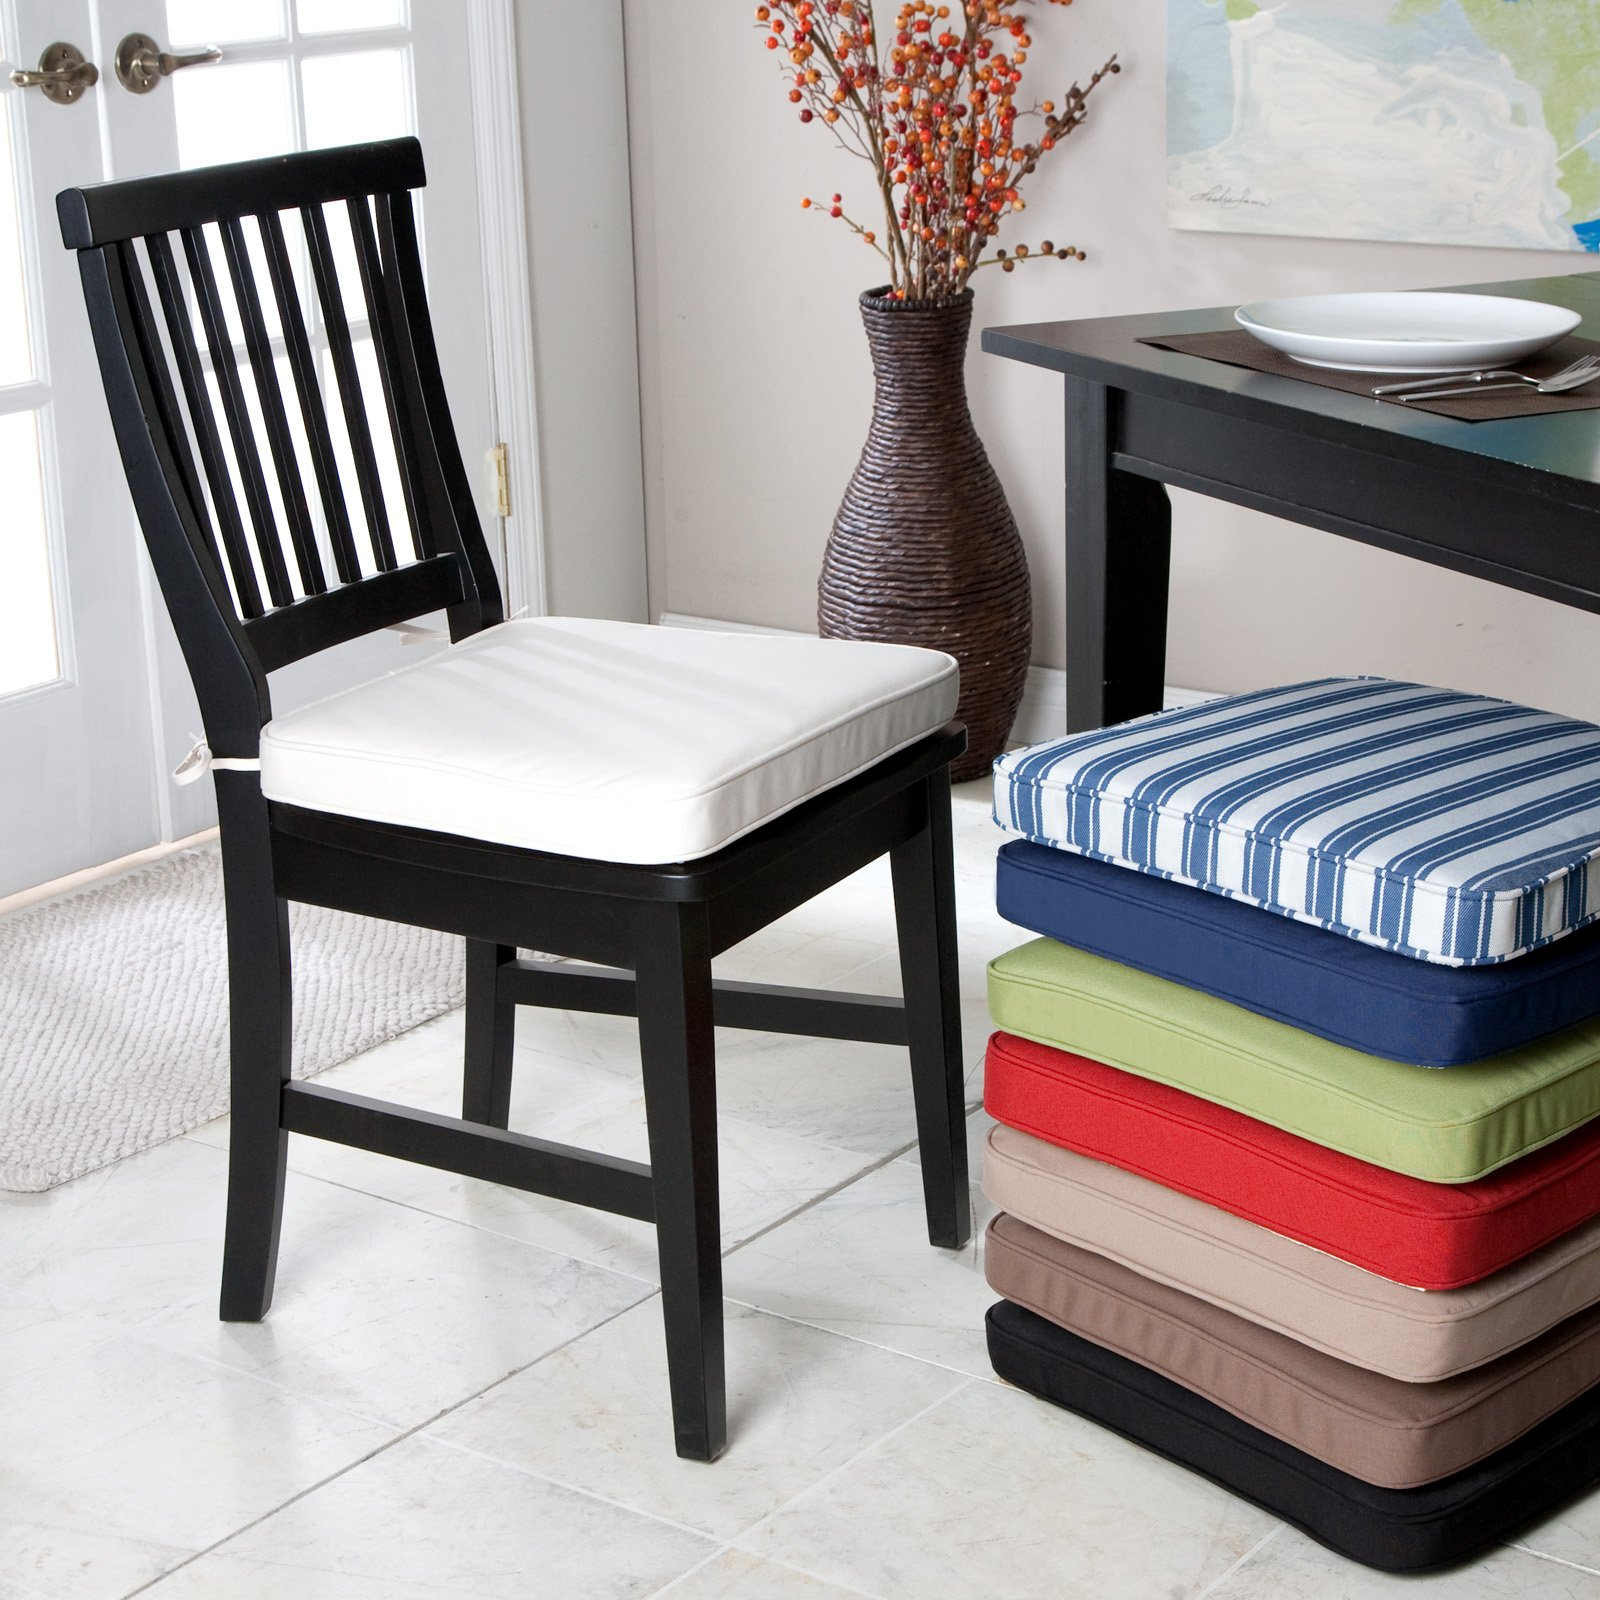 Dining Room Chair Cushions 187 Large Dining Room Chair Cushions Large Dining Room Chair